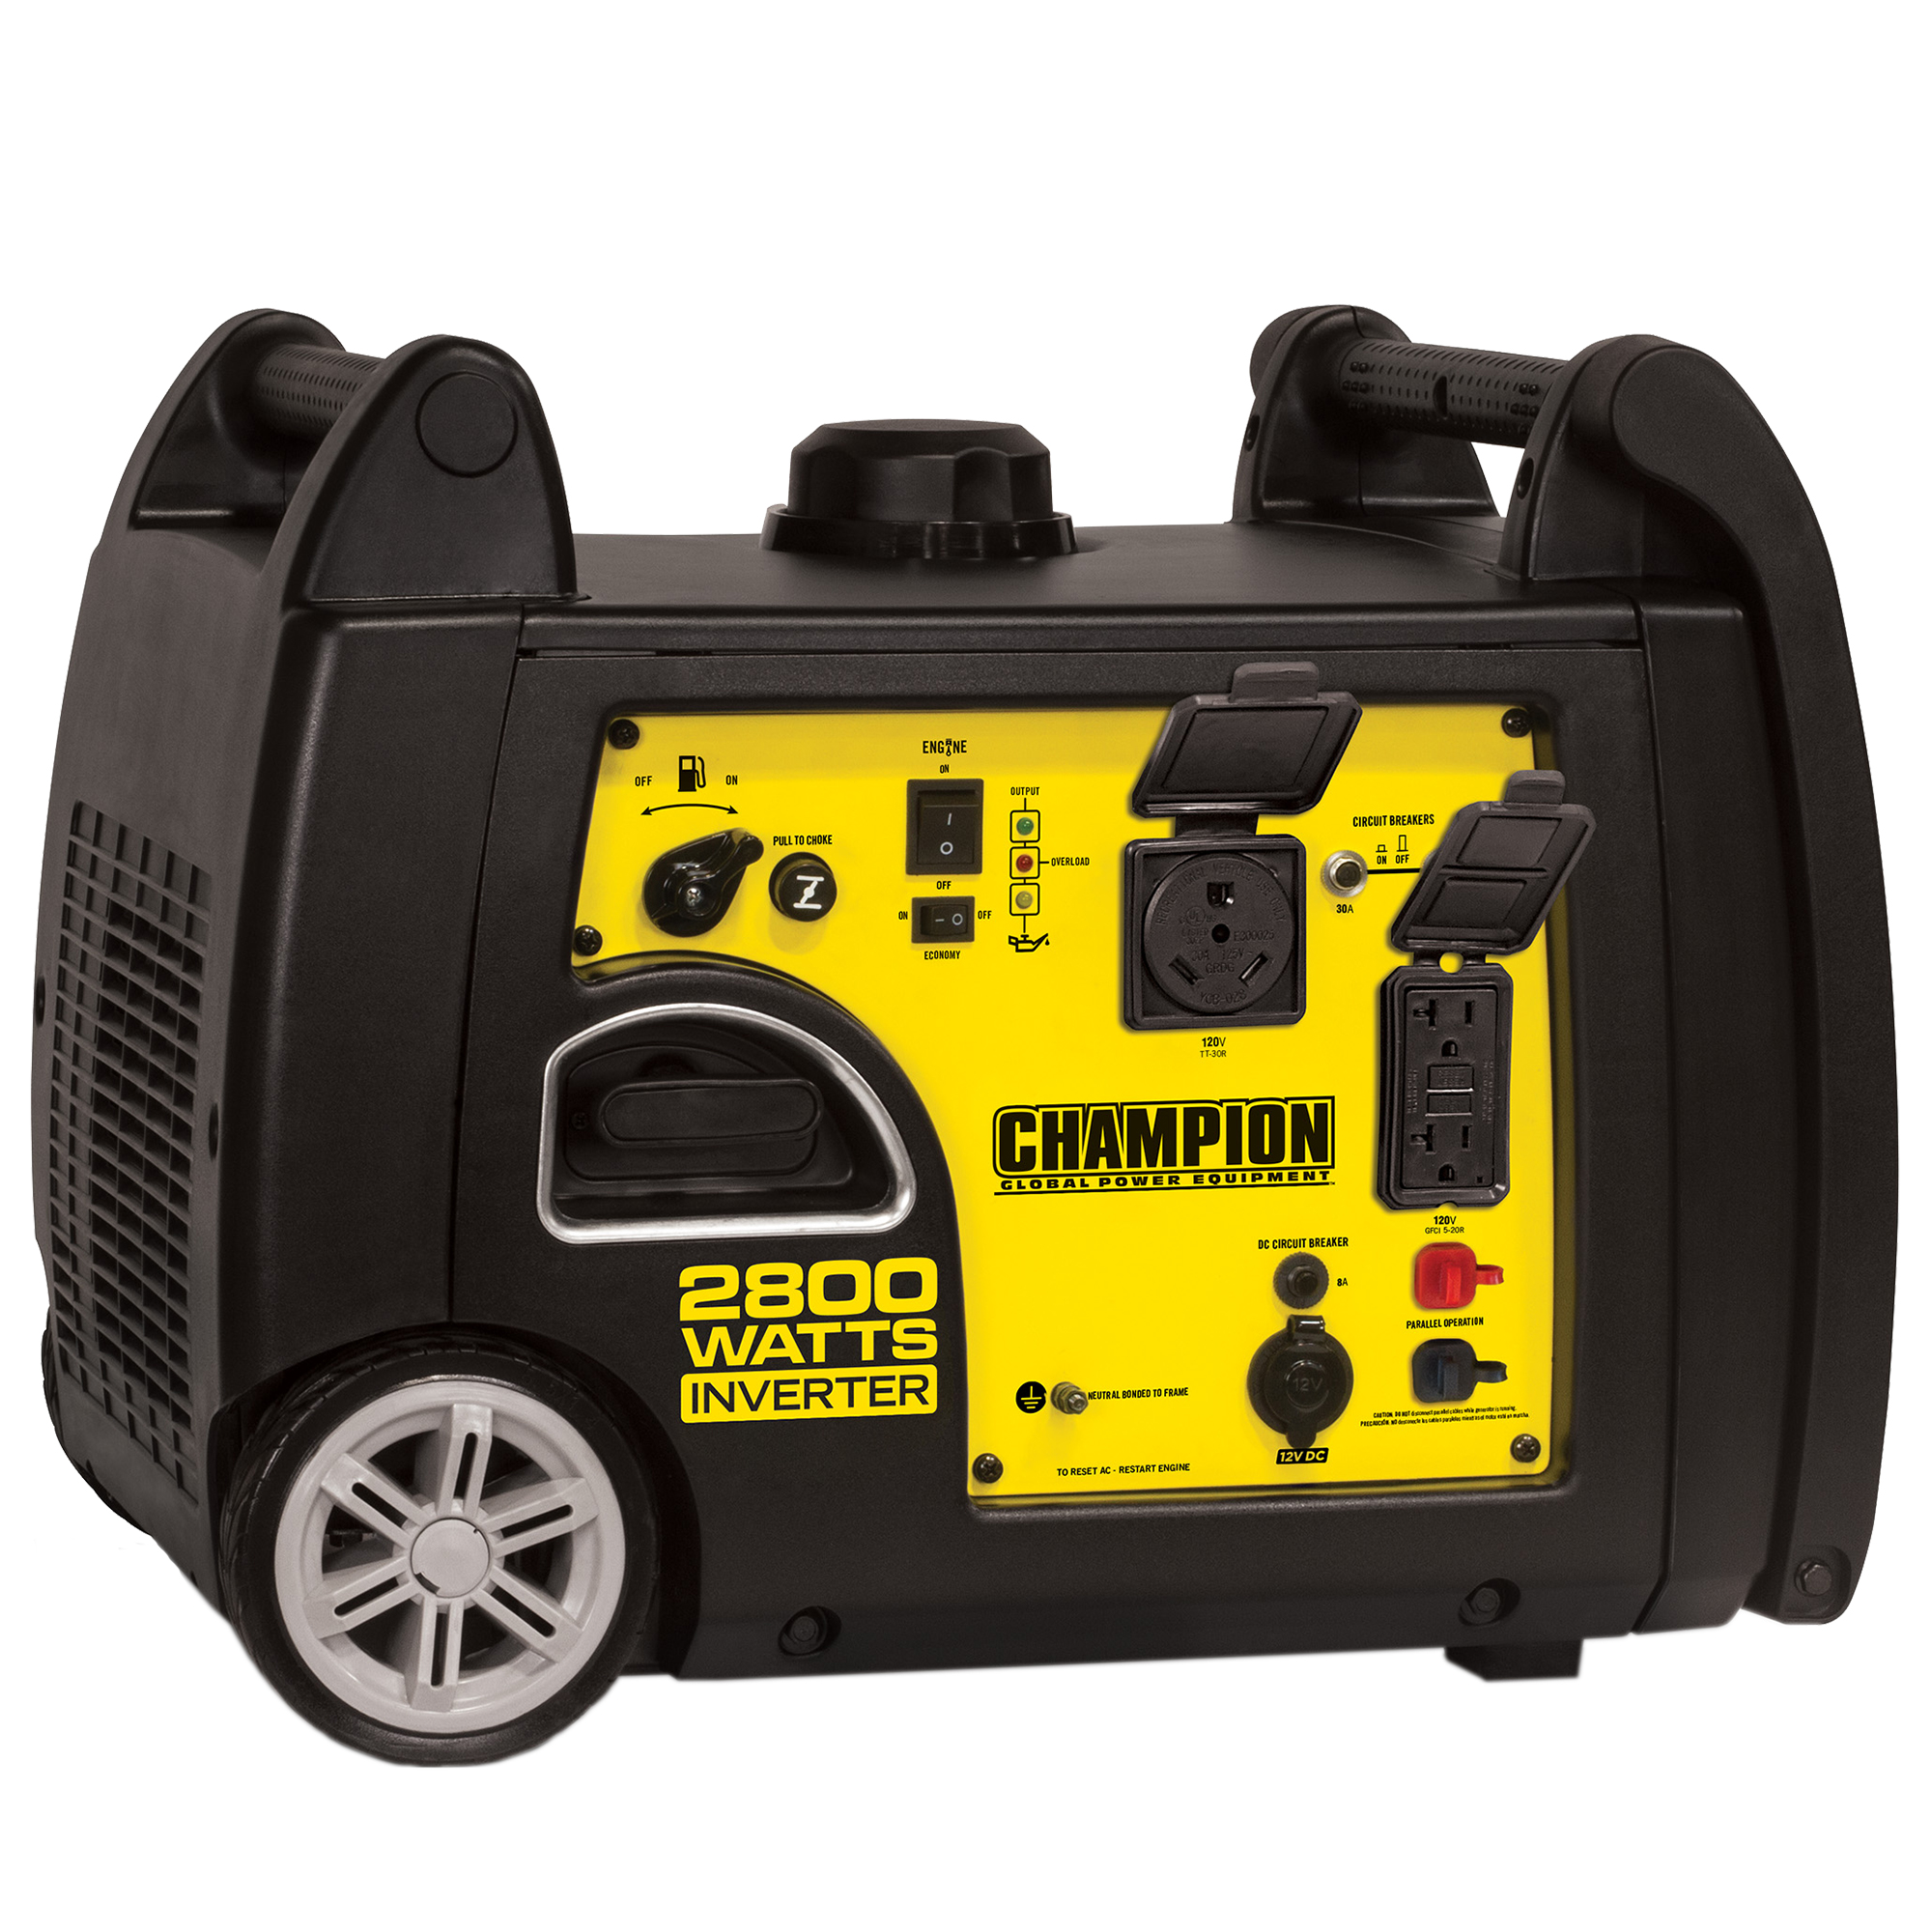 Champion Inverter Generator Costco : Champion wt running peak digital inverter gas